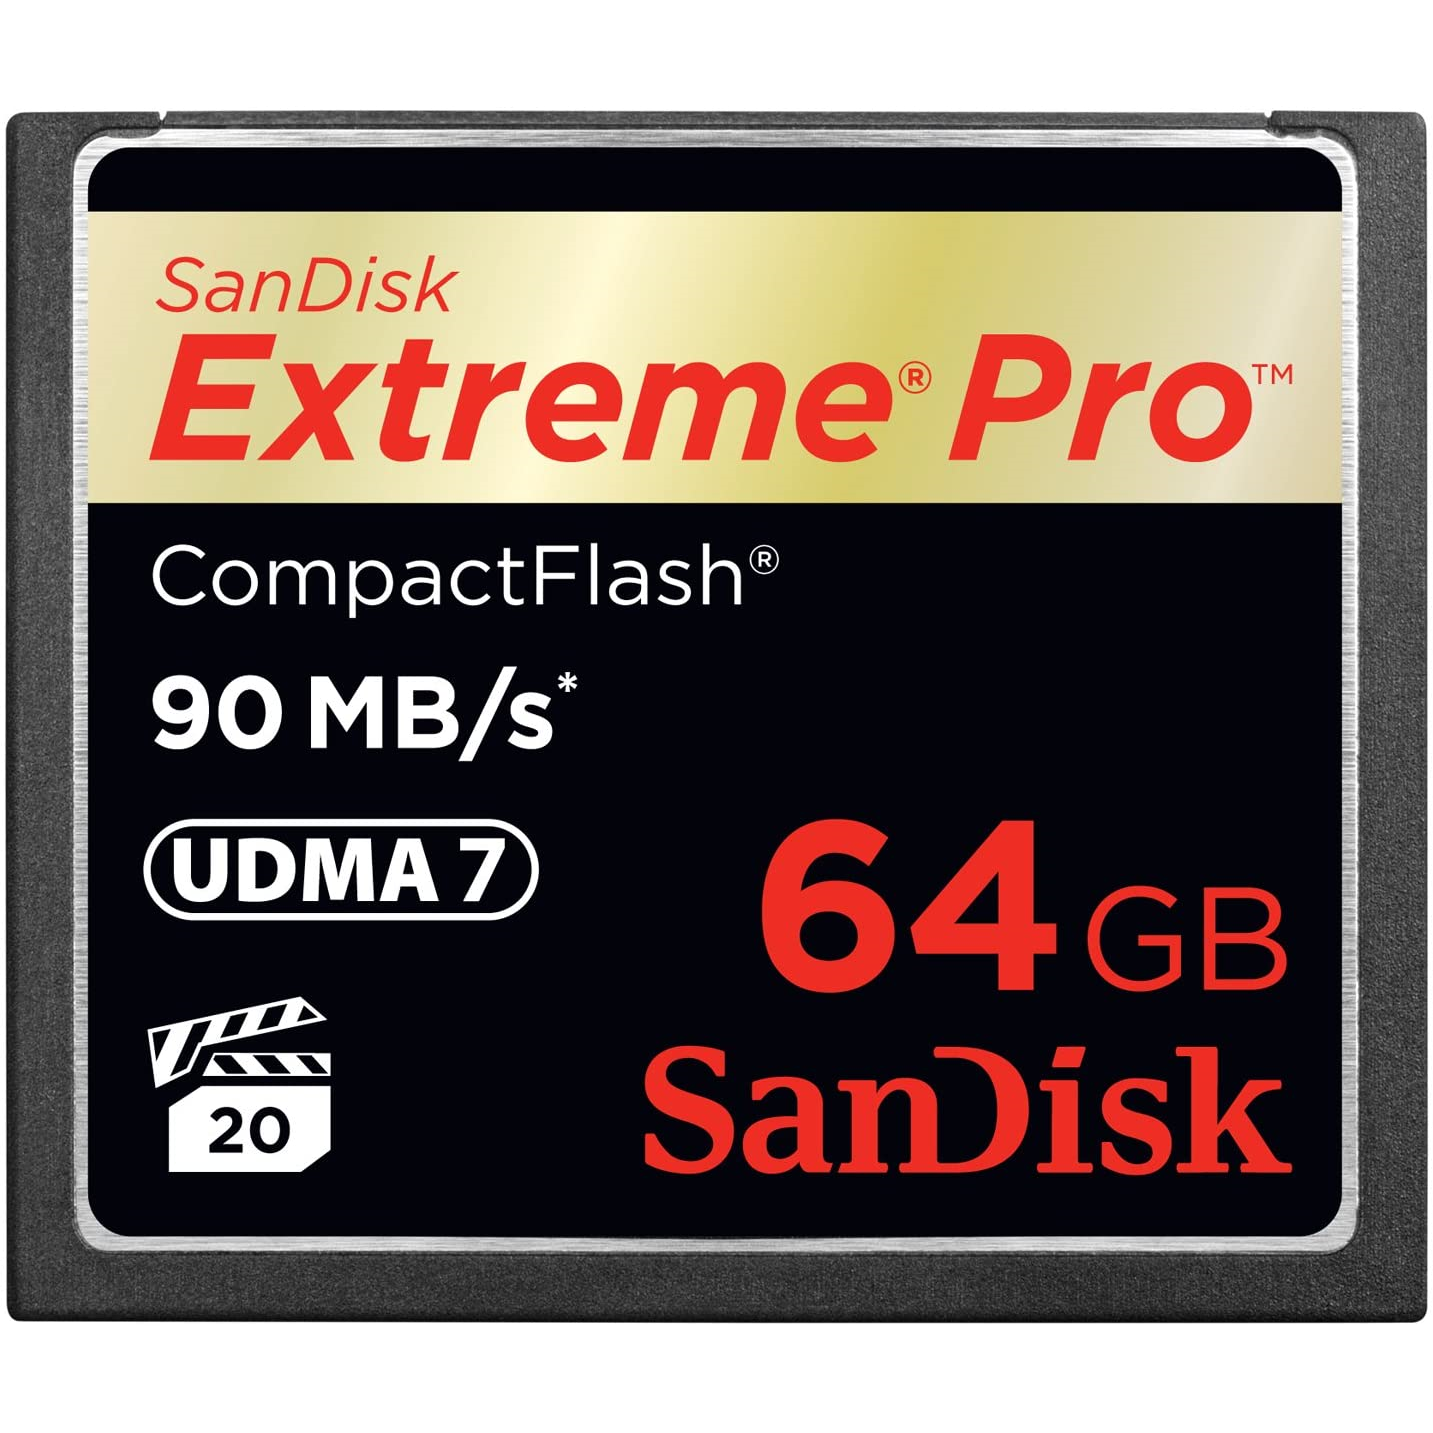 Compact Flash 64GB